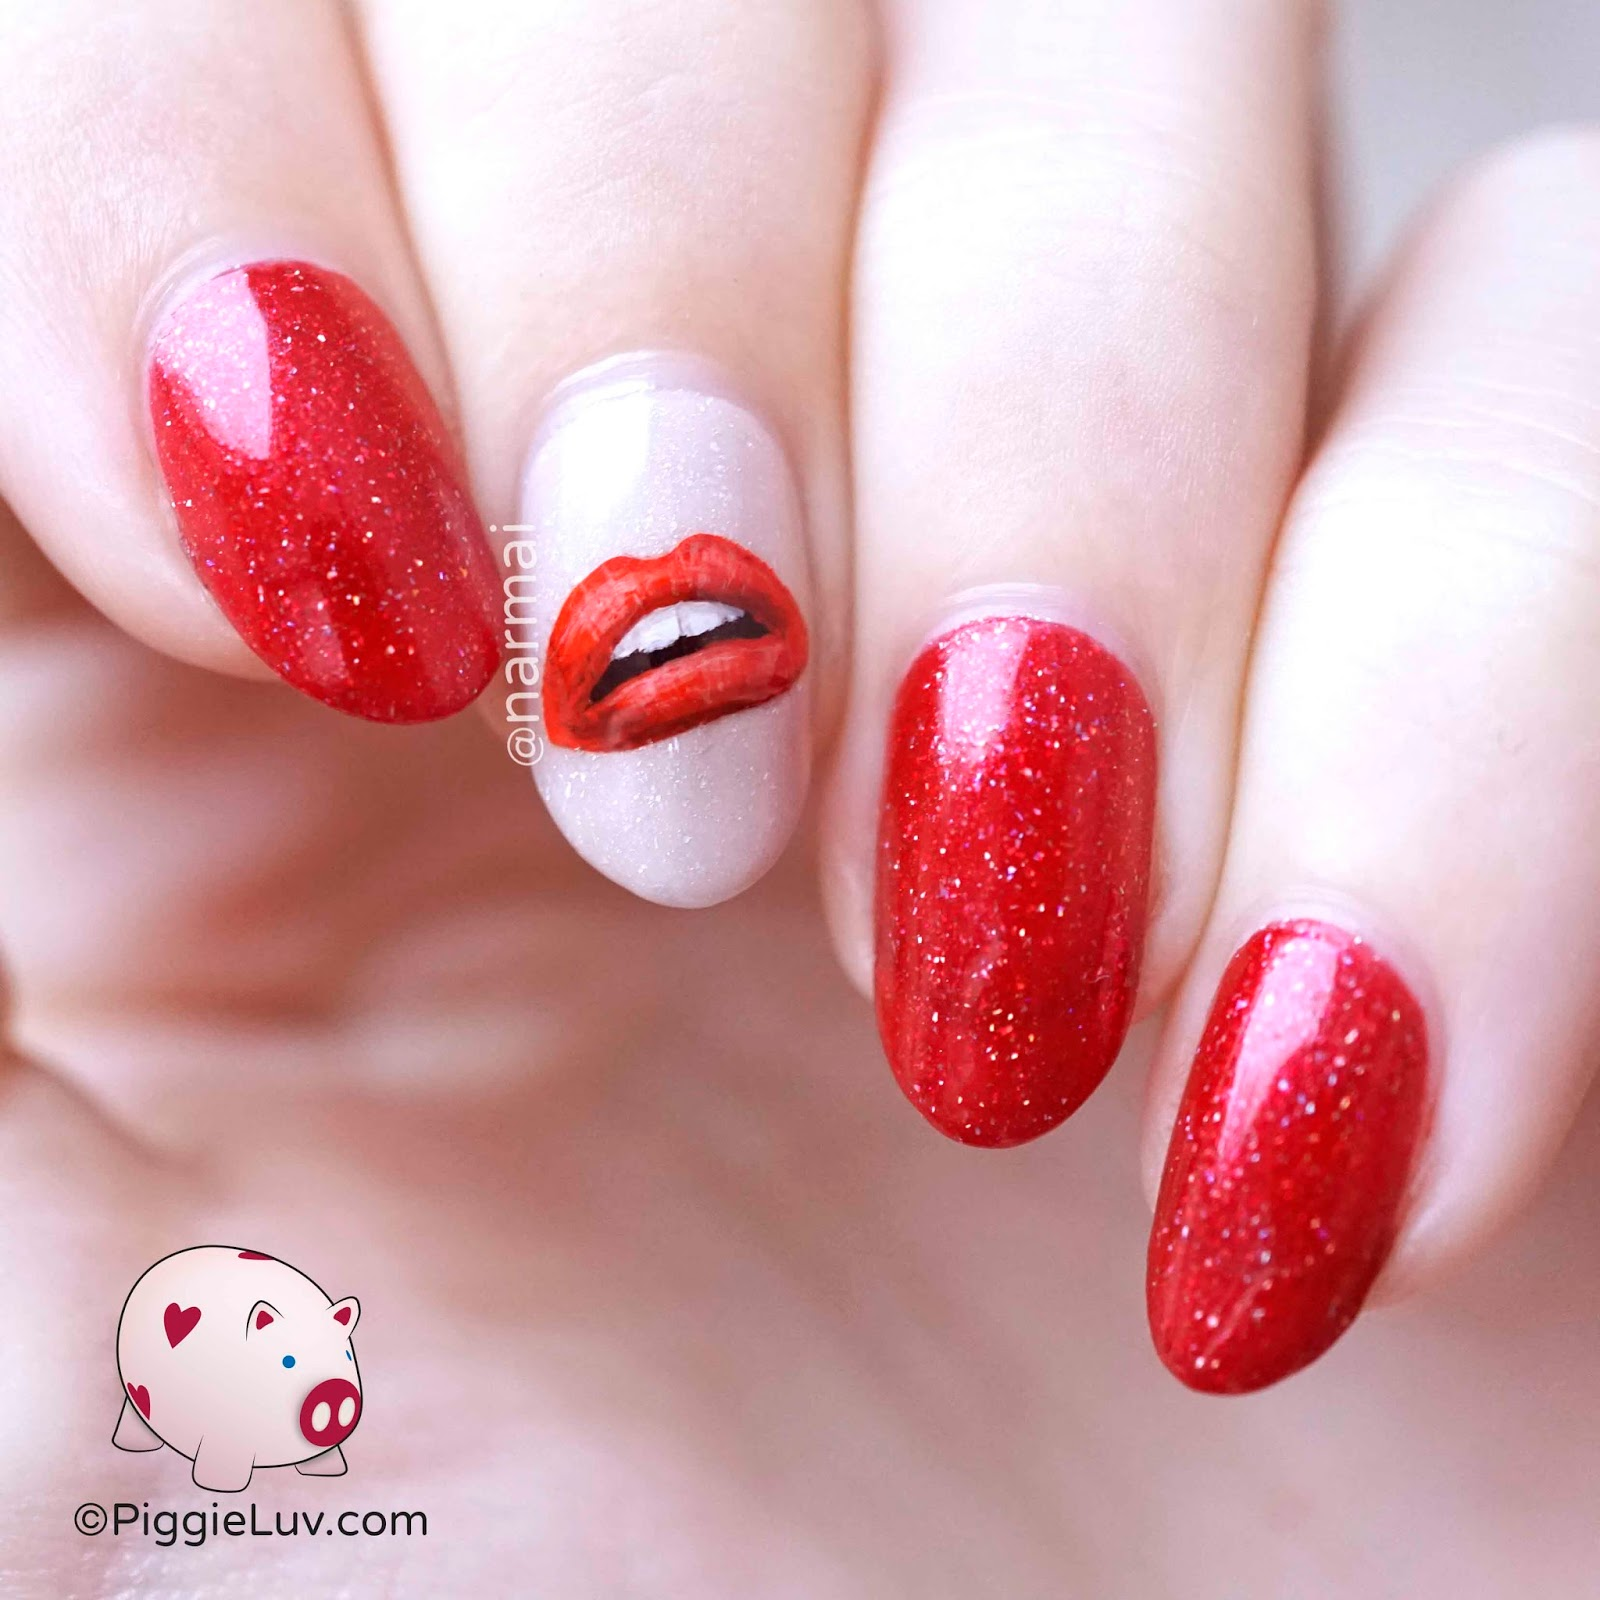 Piggieluv Hot Lips Nail Art For Valentines Day